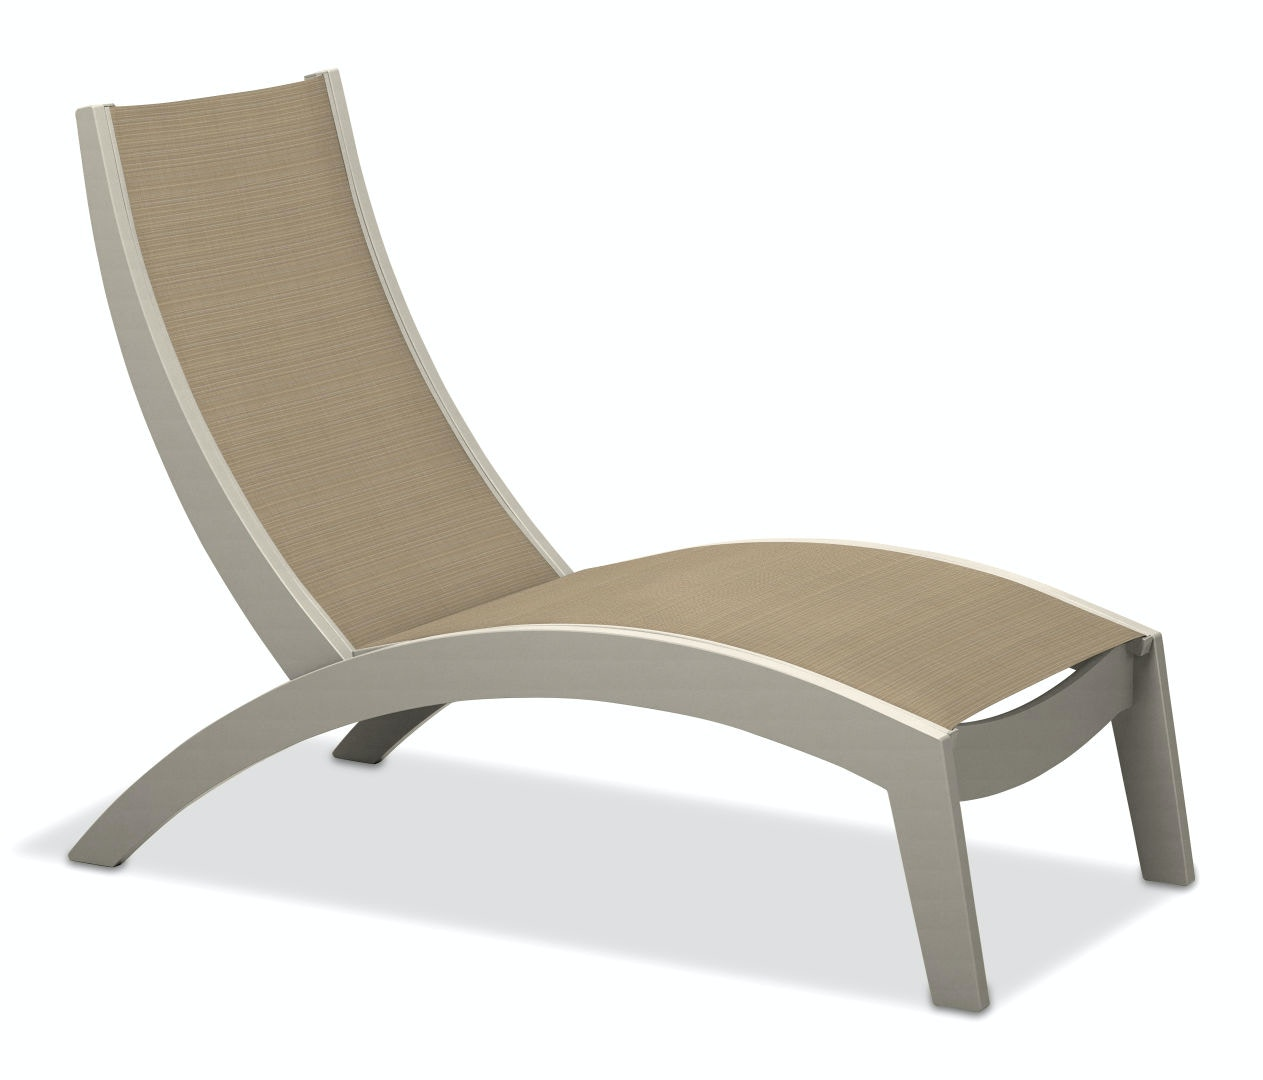 Telescope Casual Furniture Outdoor/Patio Stacking Hydro-Lounge Chaise 9N80 at Mills u0026 Thomas Furniture  sc 1 st  Mills u0026 Thomas Furniture & Telescope Casual Furniture Outdoor/Patio Stacking Hydro-Lounge ...